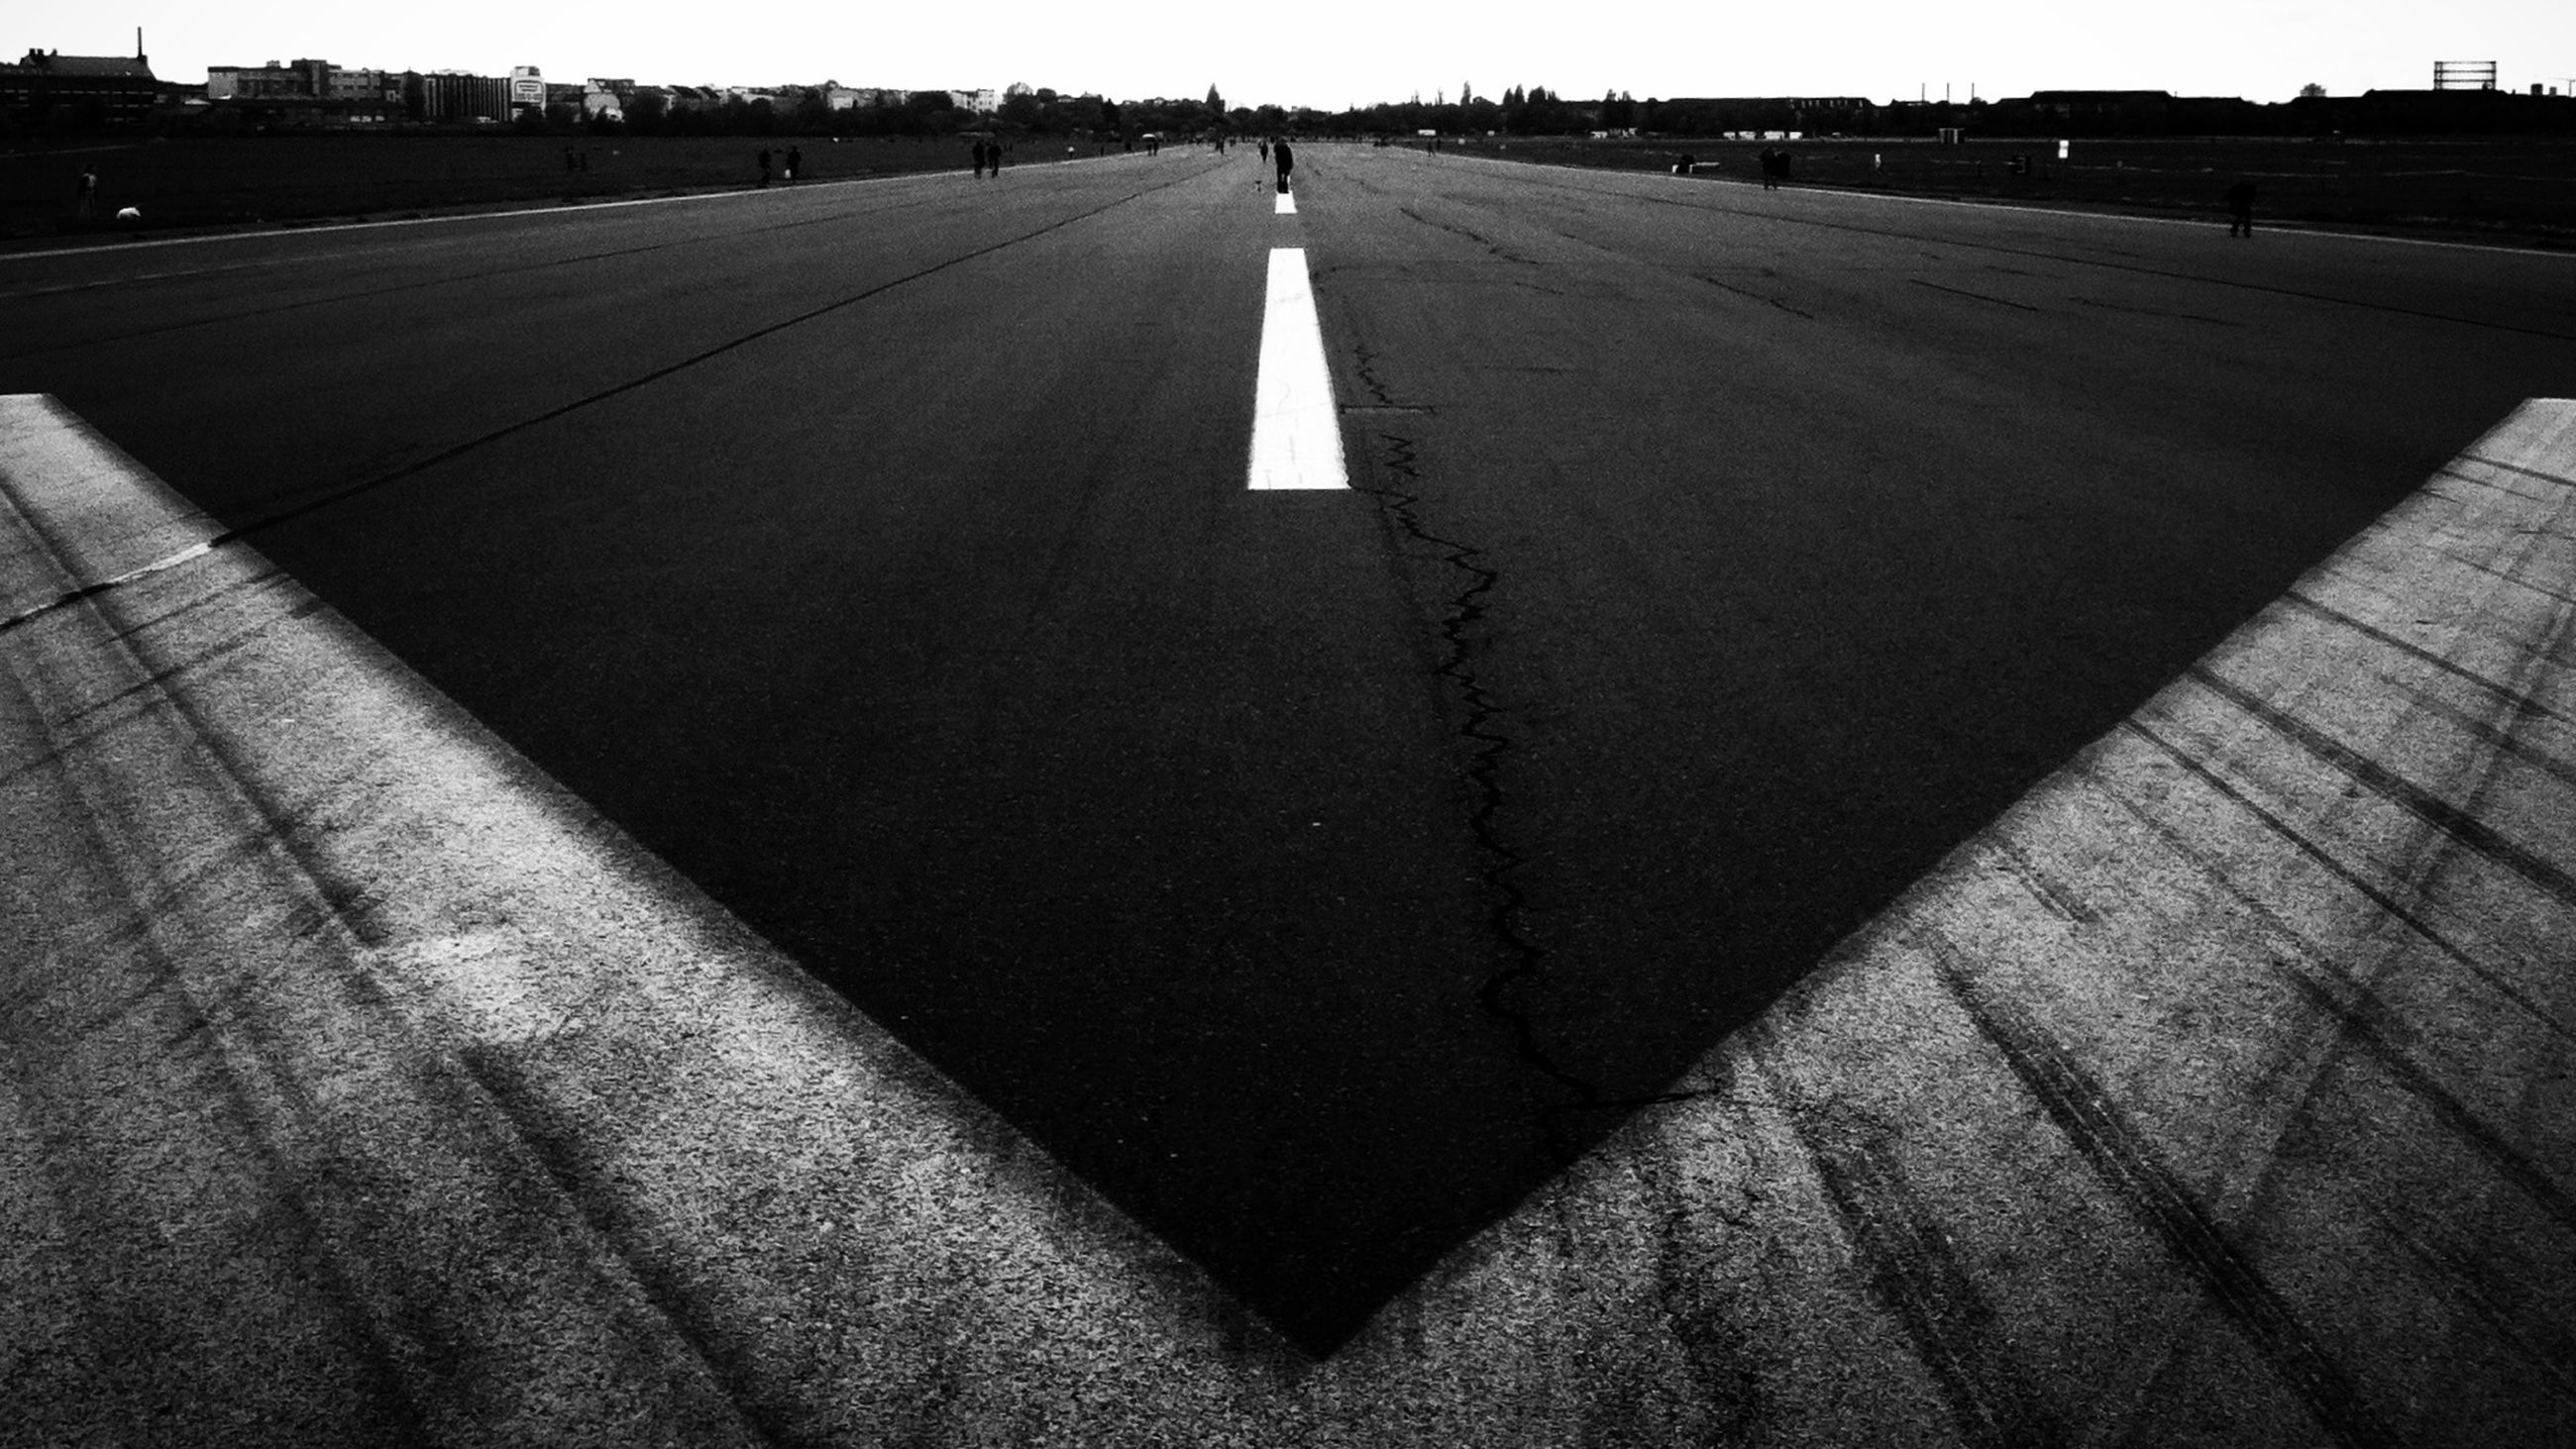 the way forward, road marking, diminishing perspective, transportation, vanishing point, road, asphalt, street, guidance, arrow symbol, direction, empty, surface level, outdoors, day, empty road, in a row, no people, absence, long